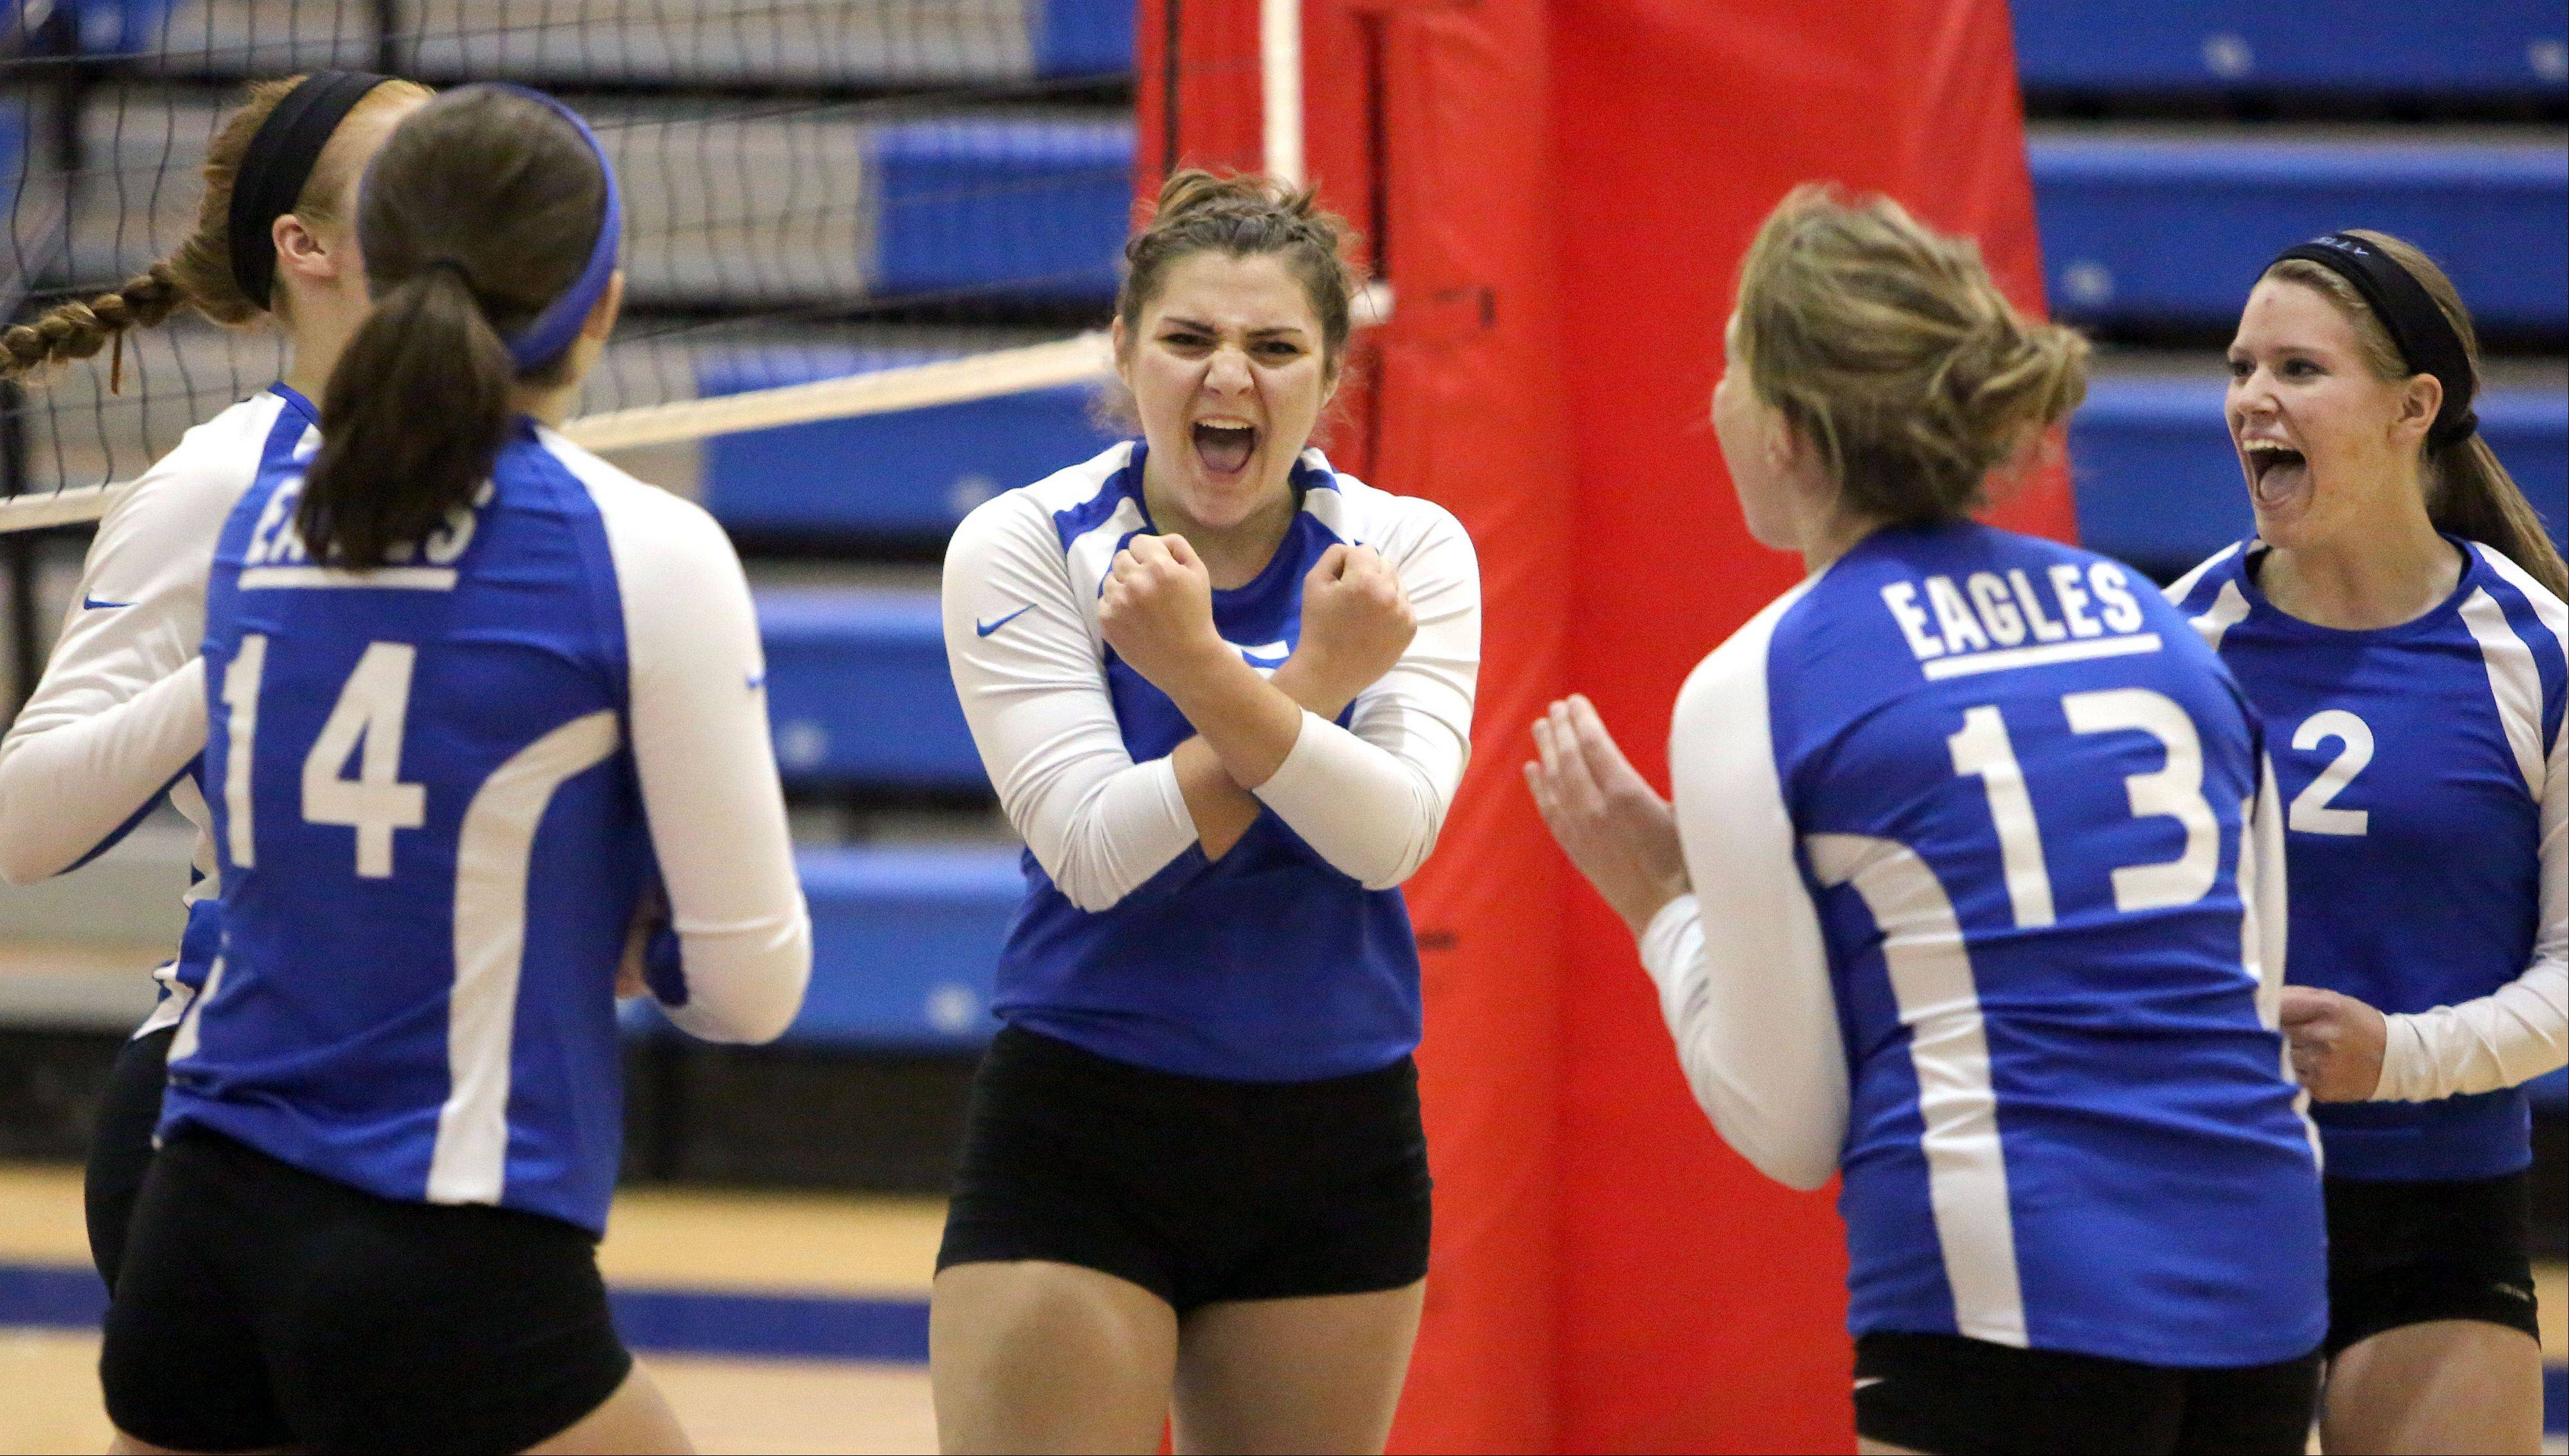 Lakes' Maddie Demo celebrates with teammates after winning a point against Wauconda during the girls volleyball regional semifinal game Tuesday at Lakes.